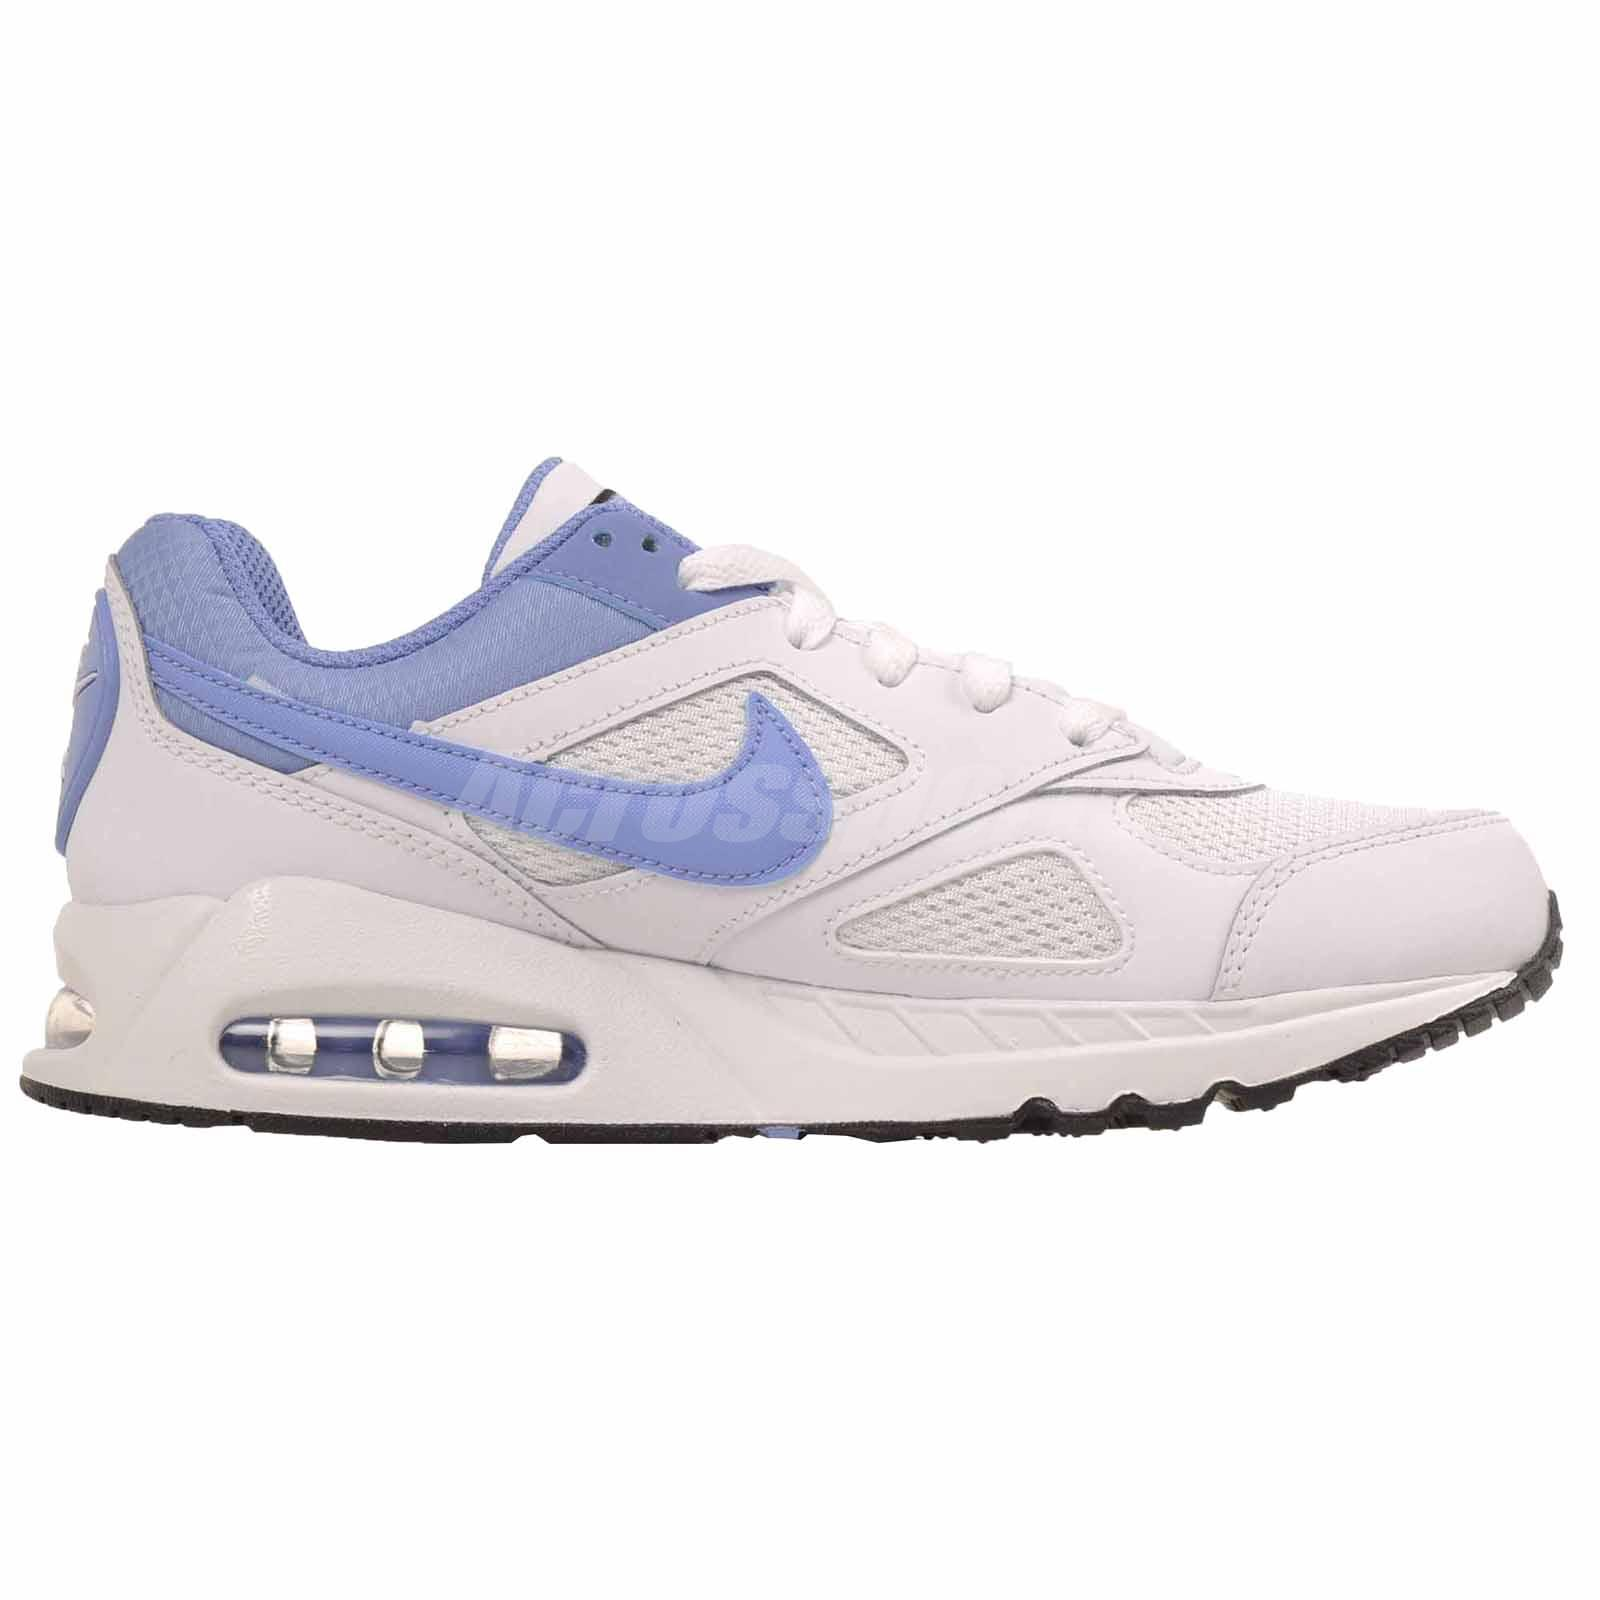 Details about Nike Air Max IVO (GS) Running Kids Youth Womens Shoes White Blue 579998 142